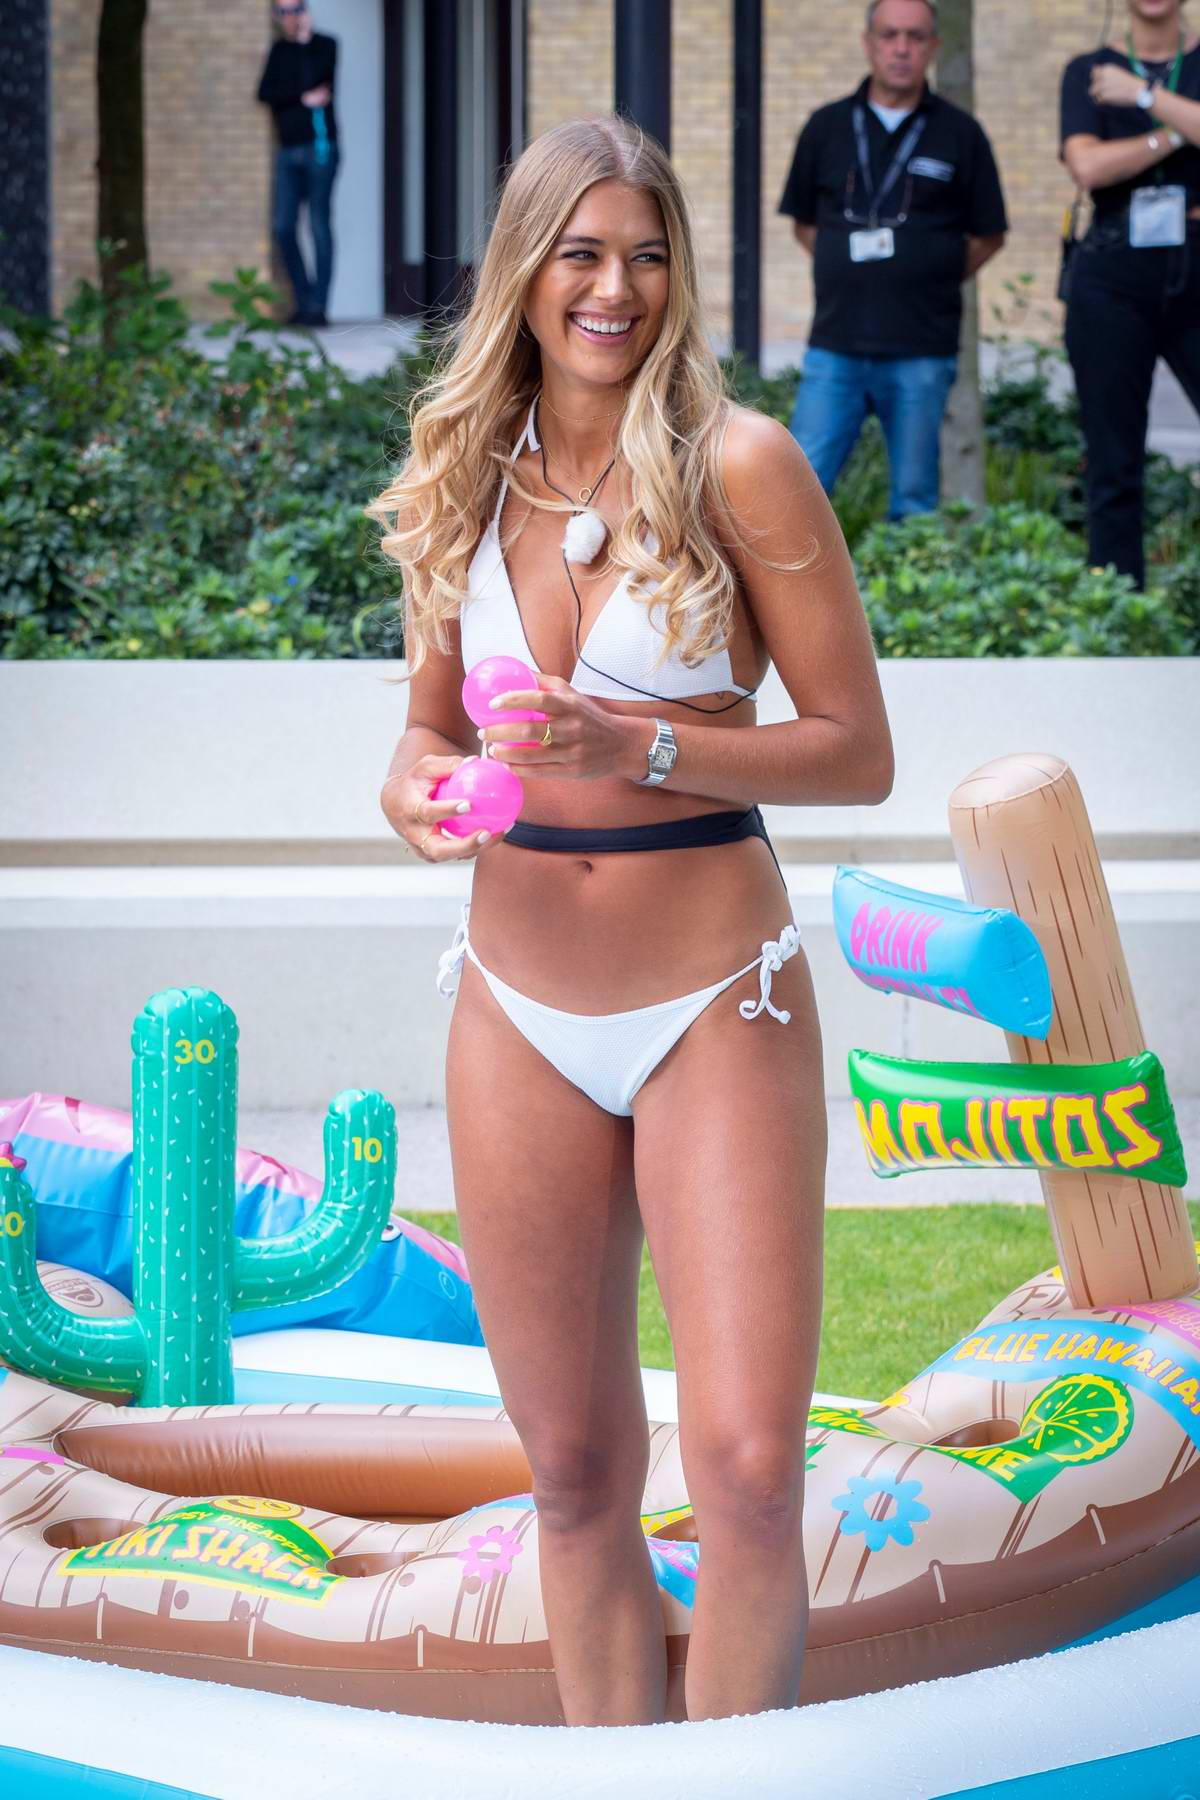 Arabella Chi sports a white bikini during her appearance on 'This Morning' TV show in London, UK